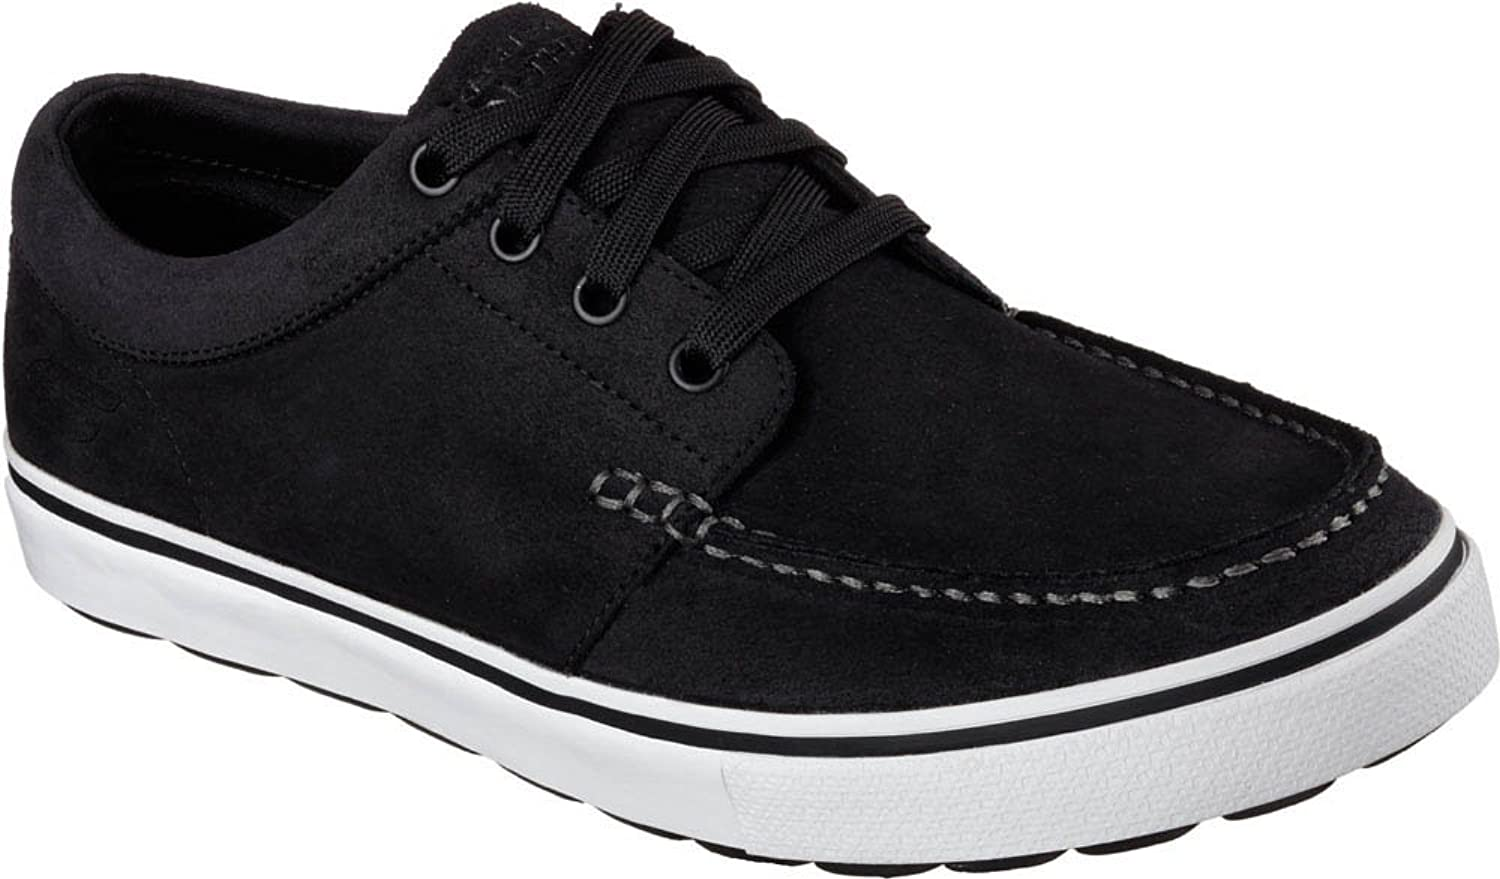 707b963f9 low-cost Skechers Go Vulc Decoy Mens Black Suede Lace Up Sneakers Shoes